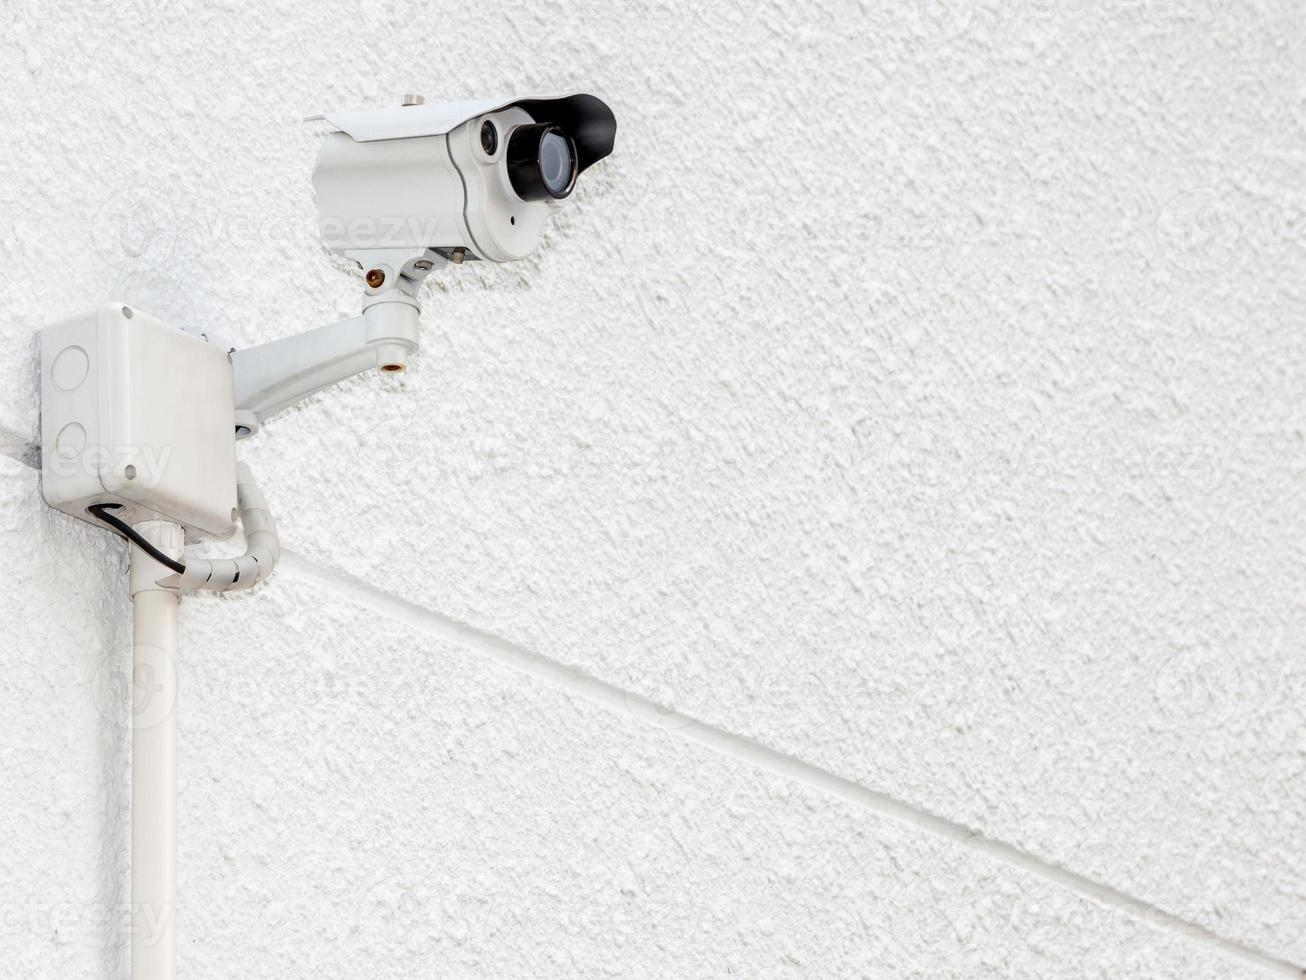 Security camera, CCTV on the white cement wall photo